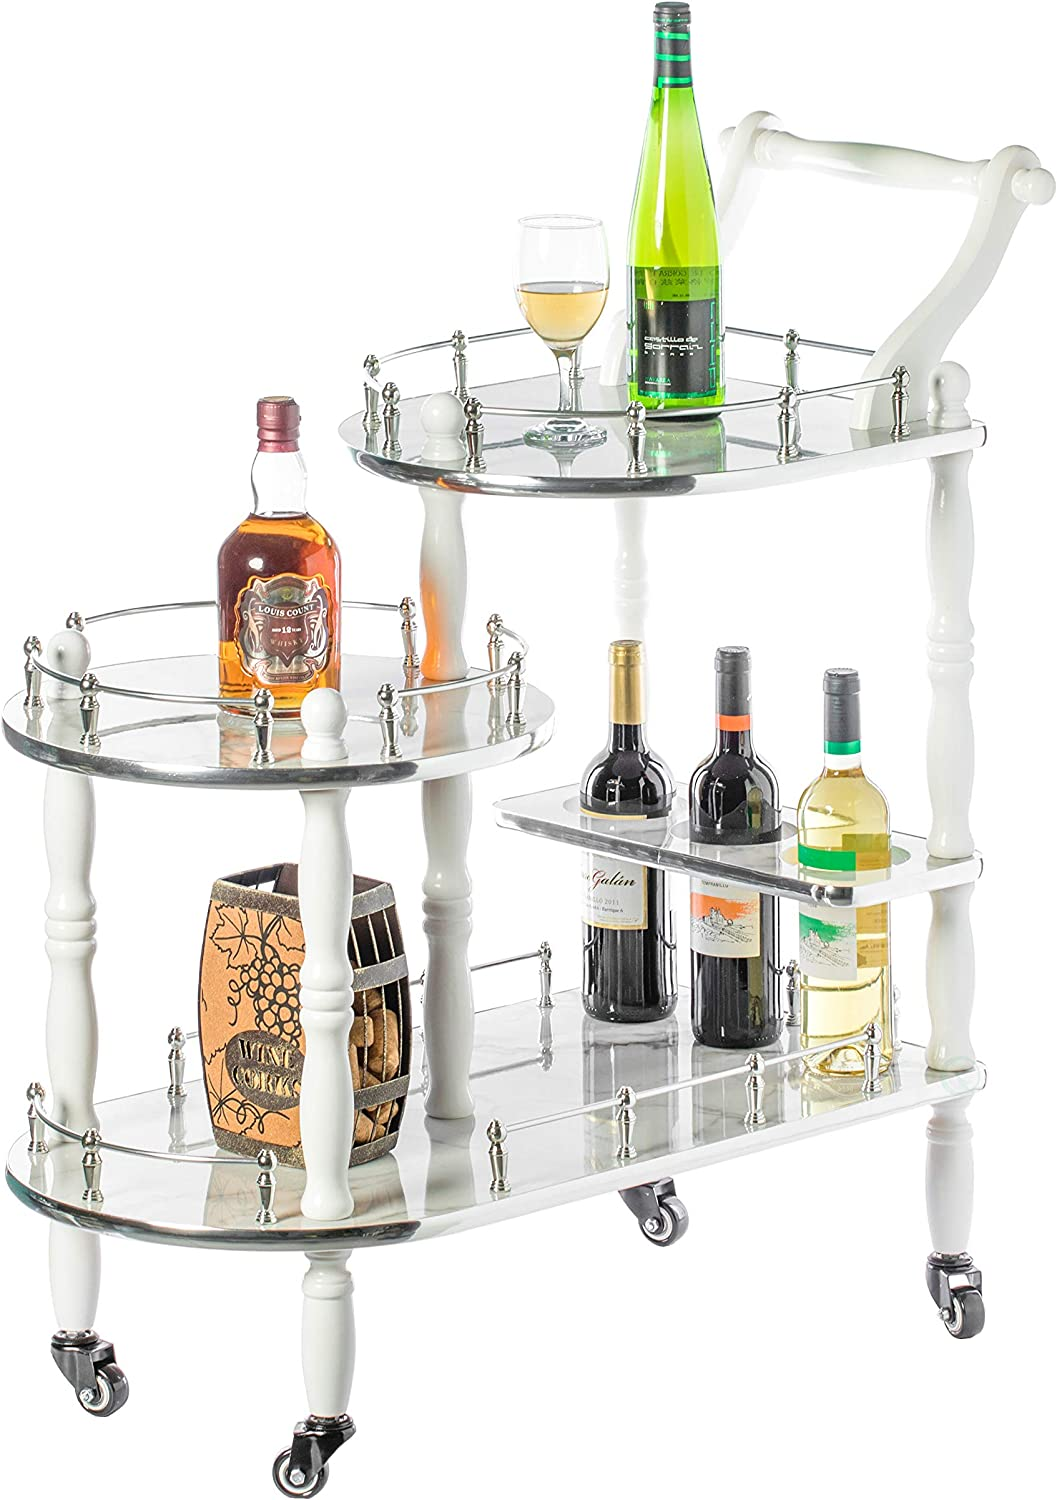 Bold Tones Wood Serving Bar Cart Tea Trolley with 3 Tier Shelves and Rolling Wheels, Silver, White and Gray, Grey